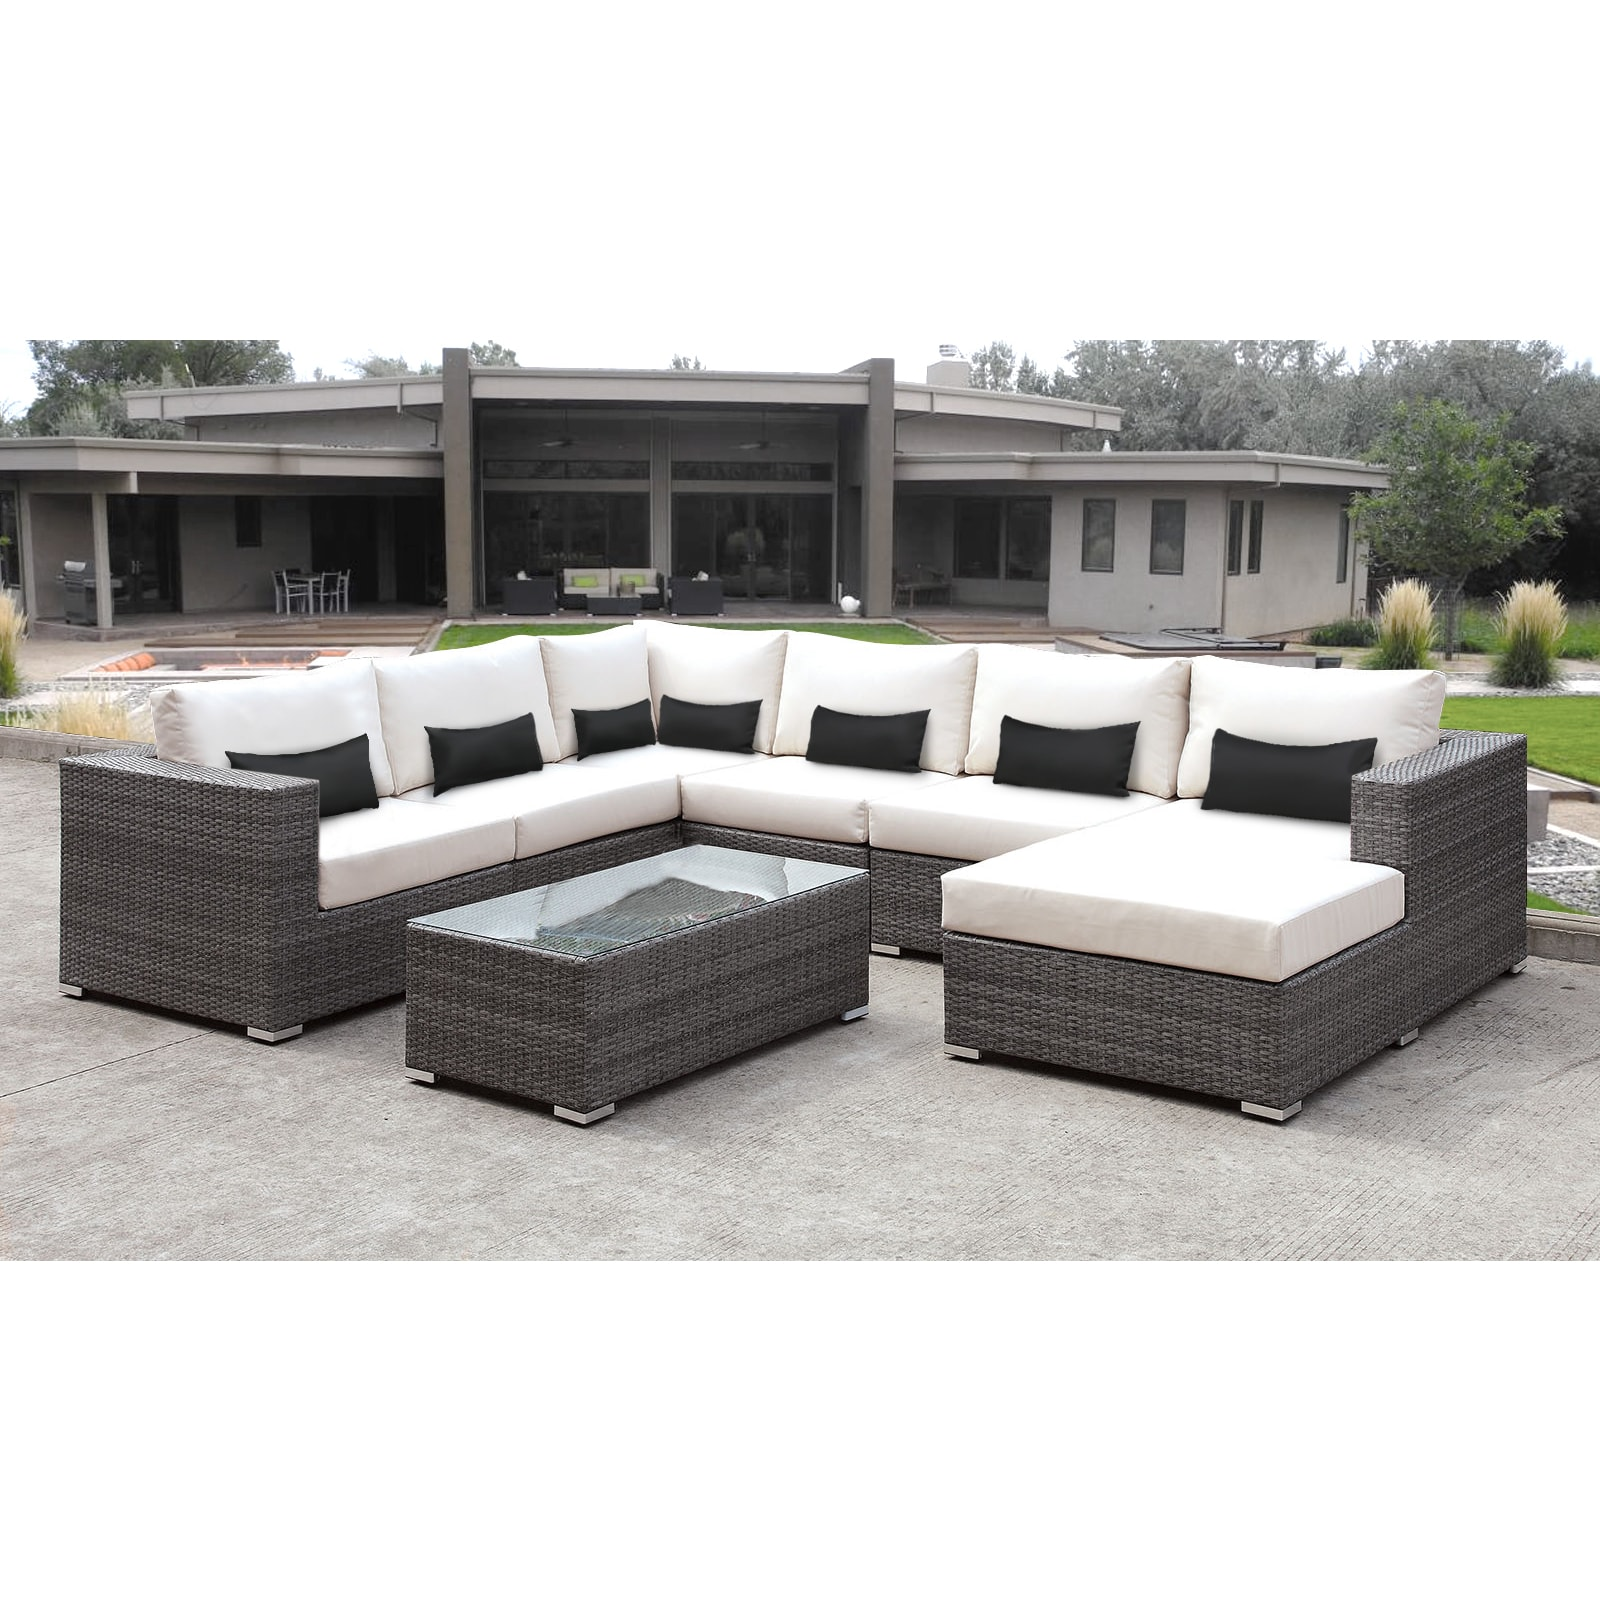 solis lusso 7 piece outdoor sectional grey wicker rattan patio with white cushions and black toss pillows